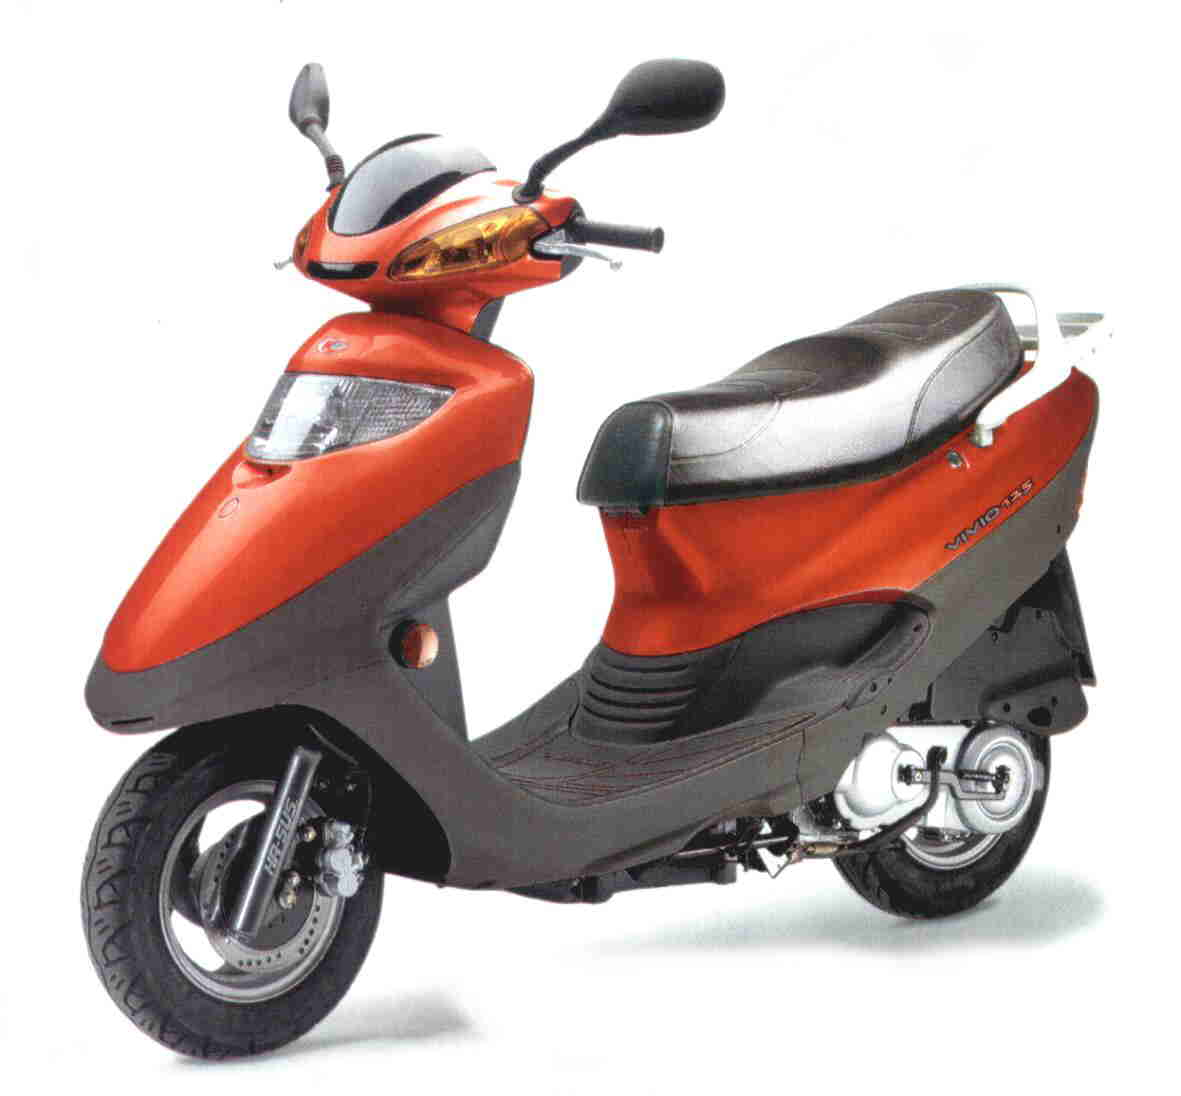 Kymco Heroism 150 1998 images #100844